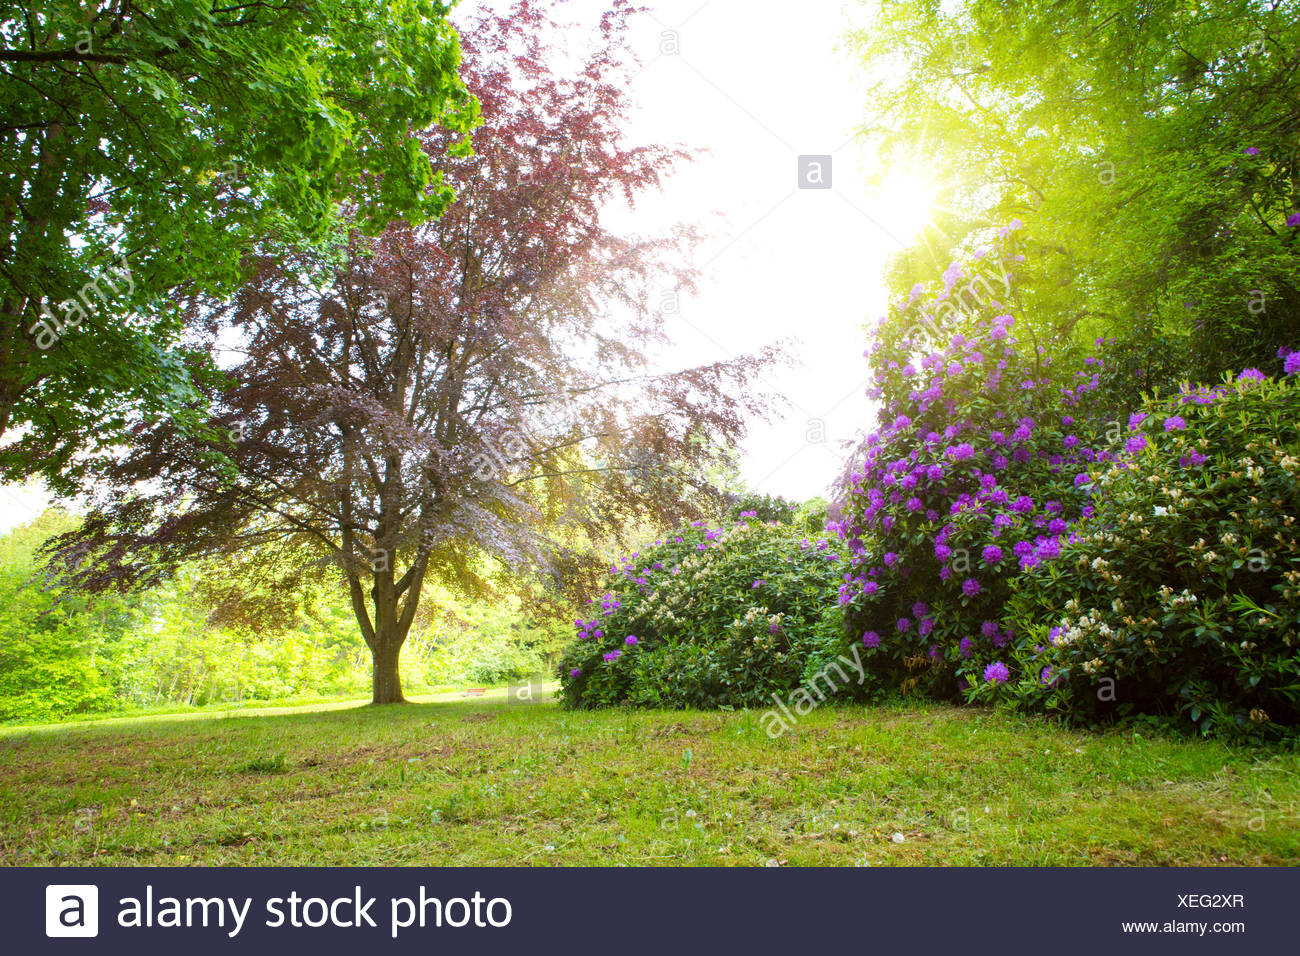 Rhododendron Bushes and sun. - Stock Image